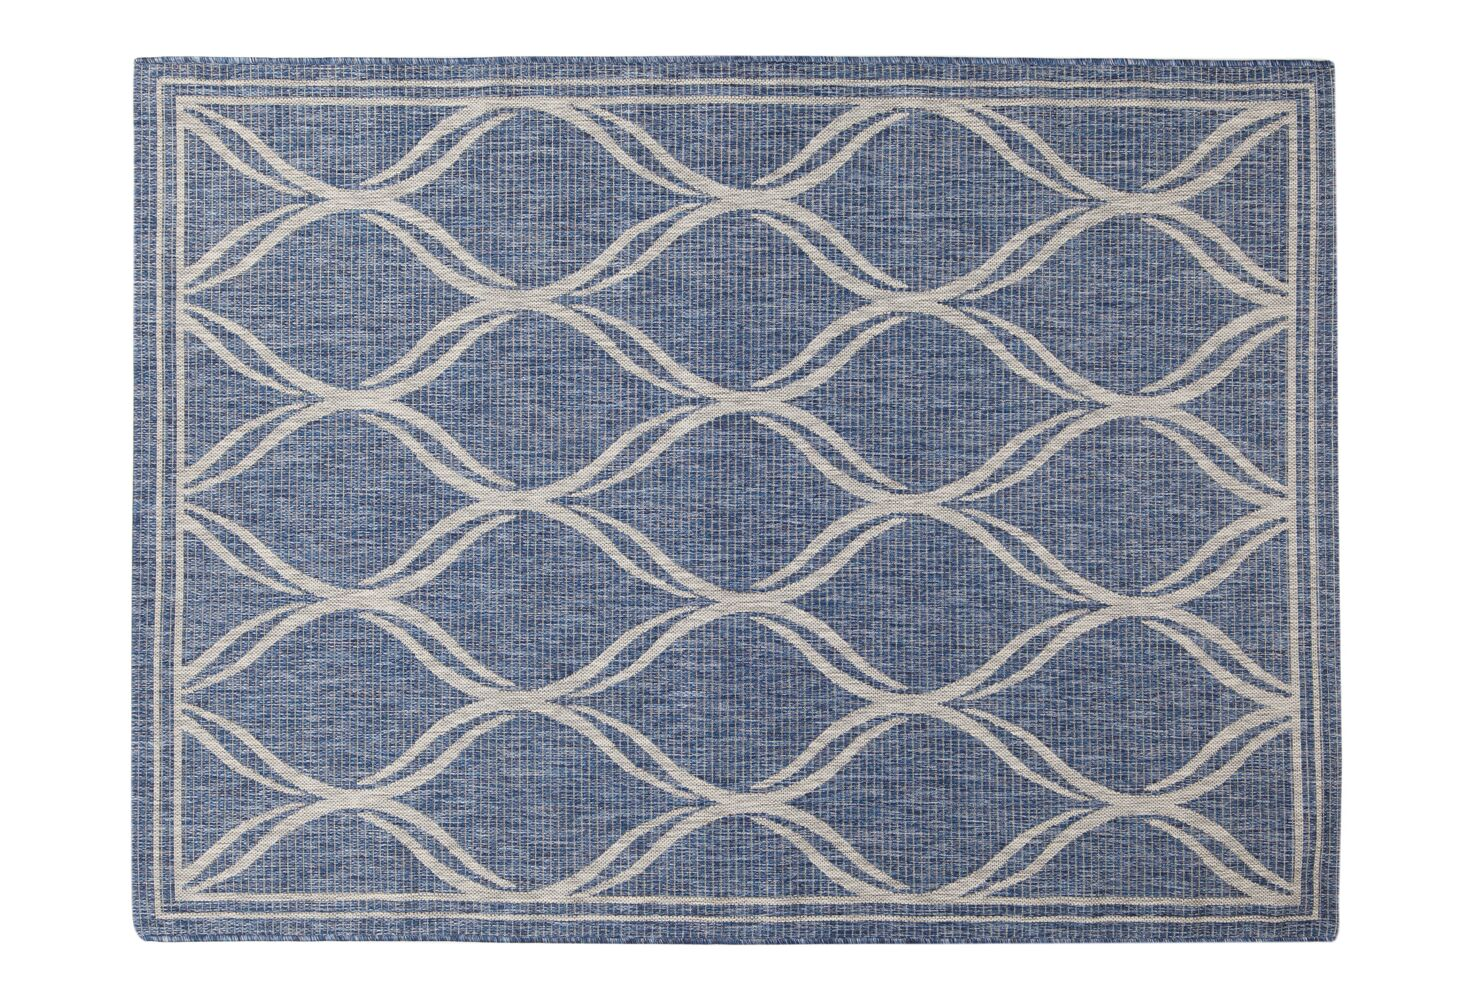 Selina Navy/Gray Indoor/Outdoor Area Rug Rug Size: Rectangle 5' x 8'